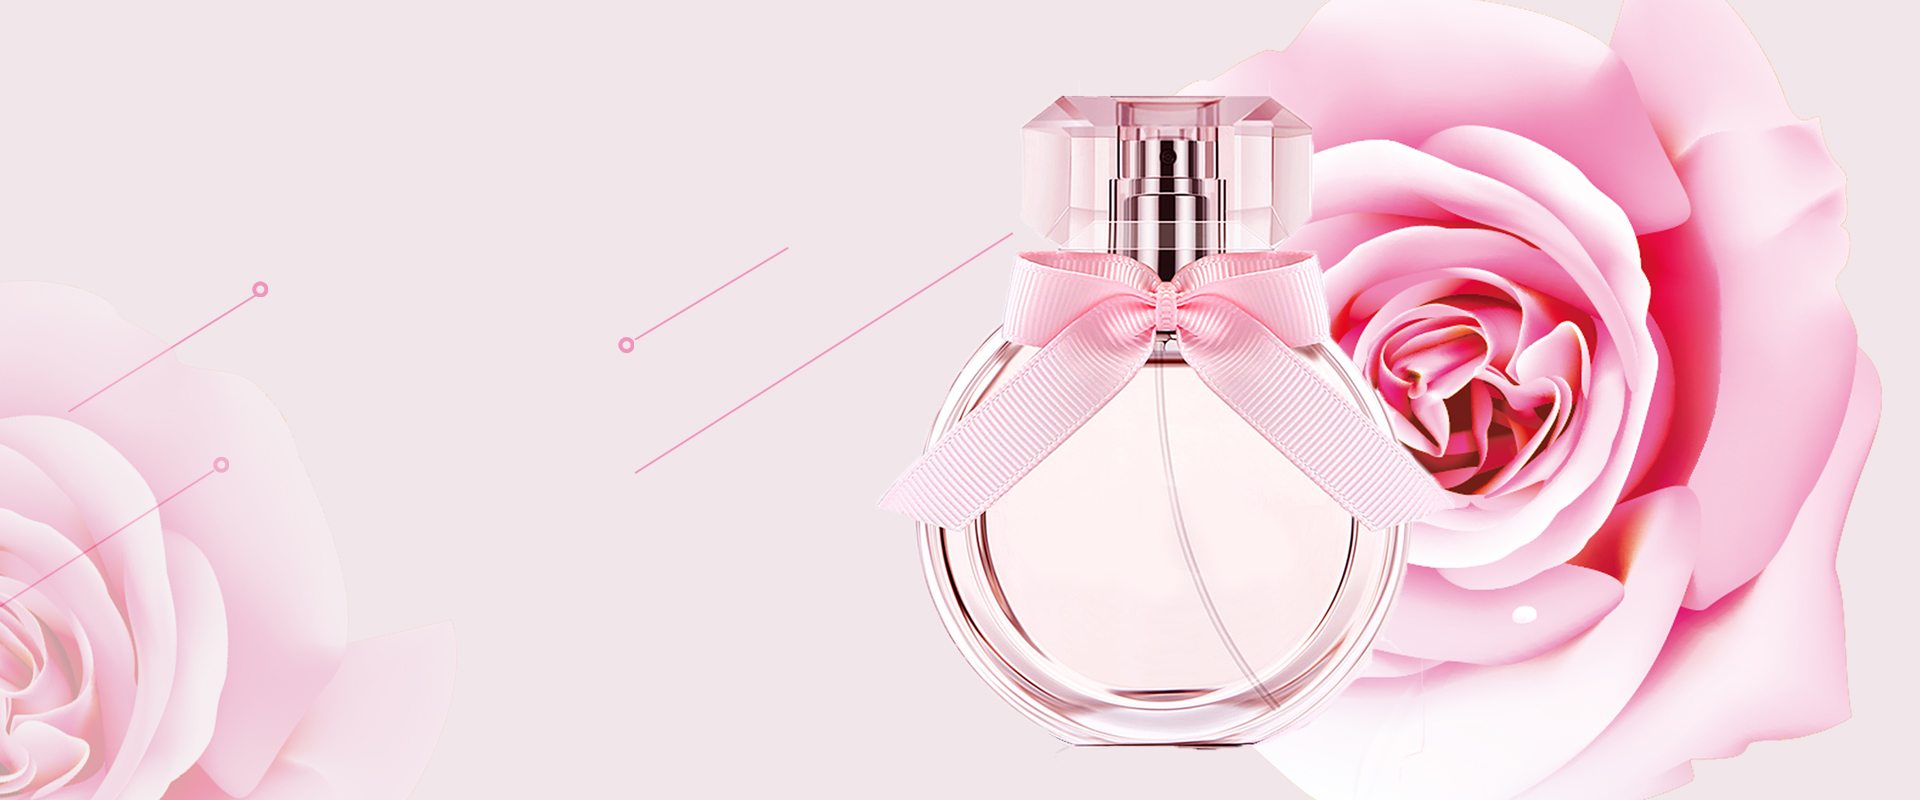 perfume simple pink poster background banner  perfume